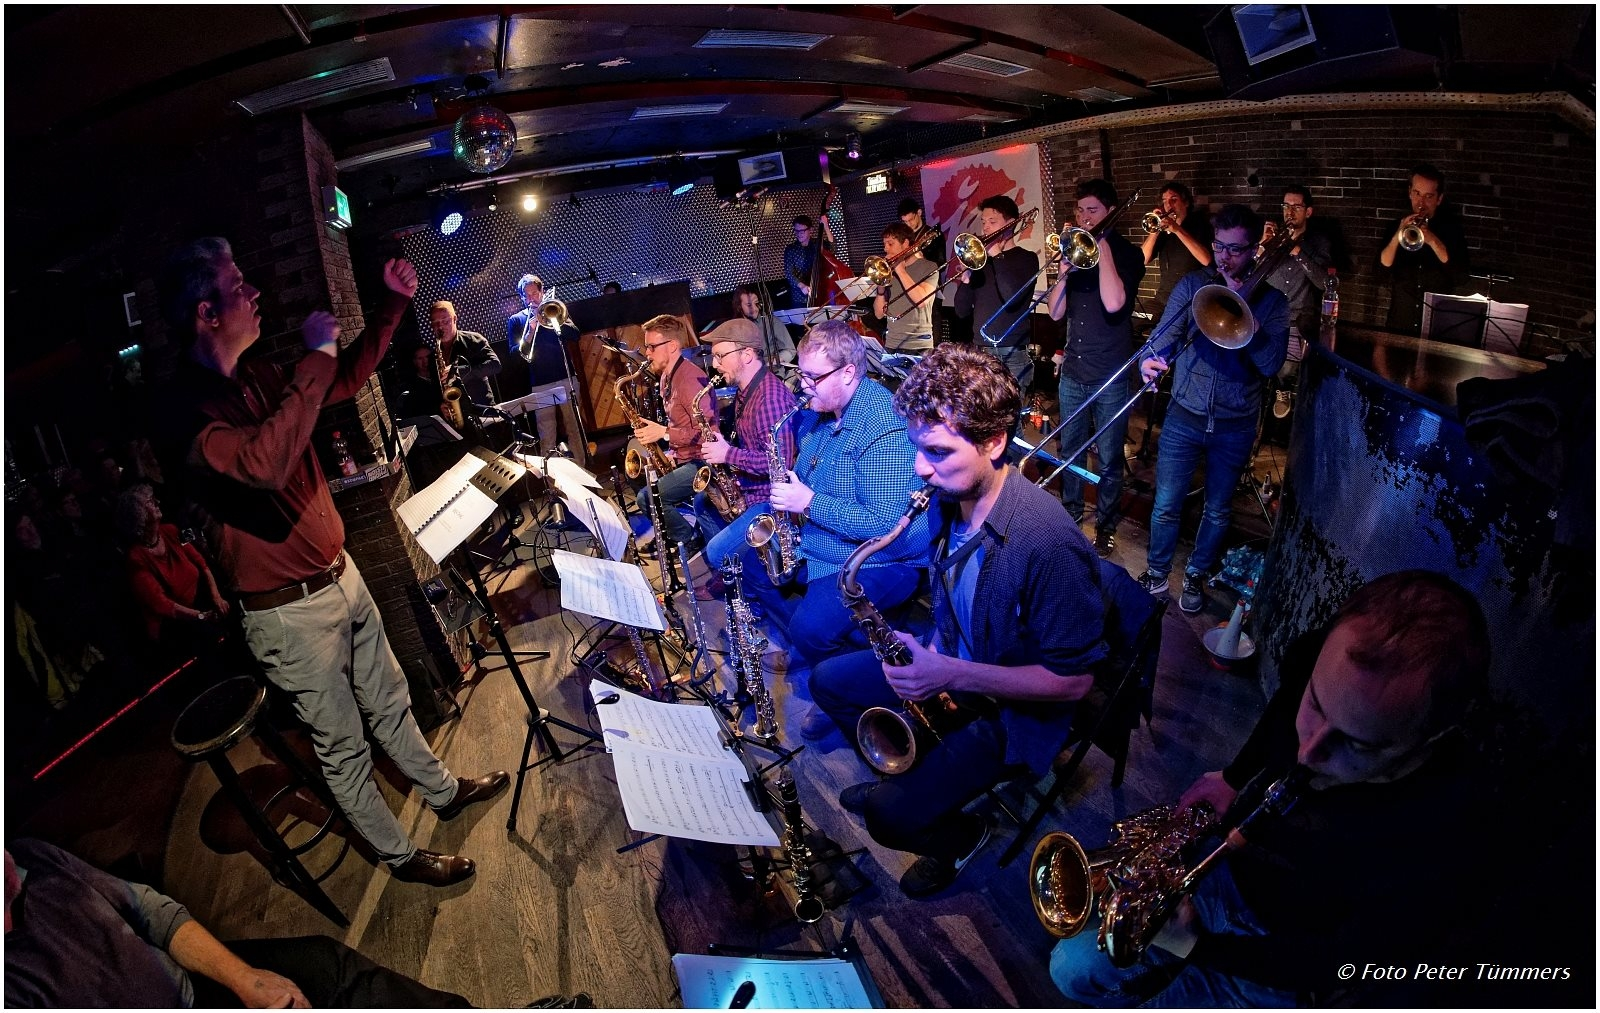 Subway Jazz Orchestra, photo by Peter Tümmers